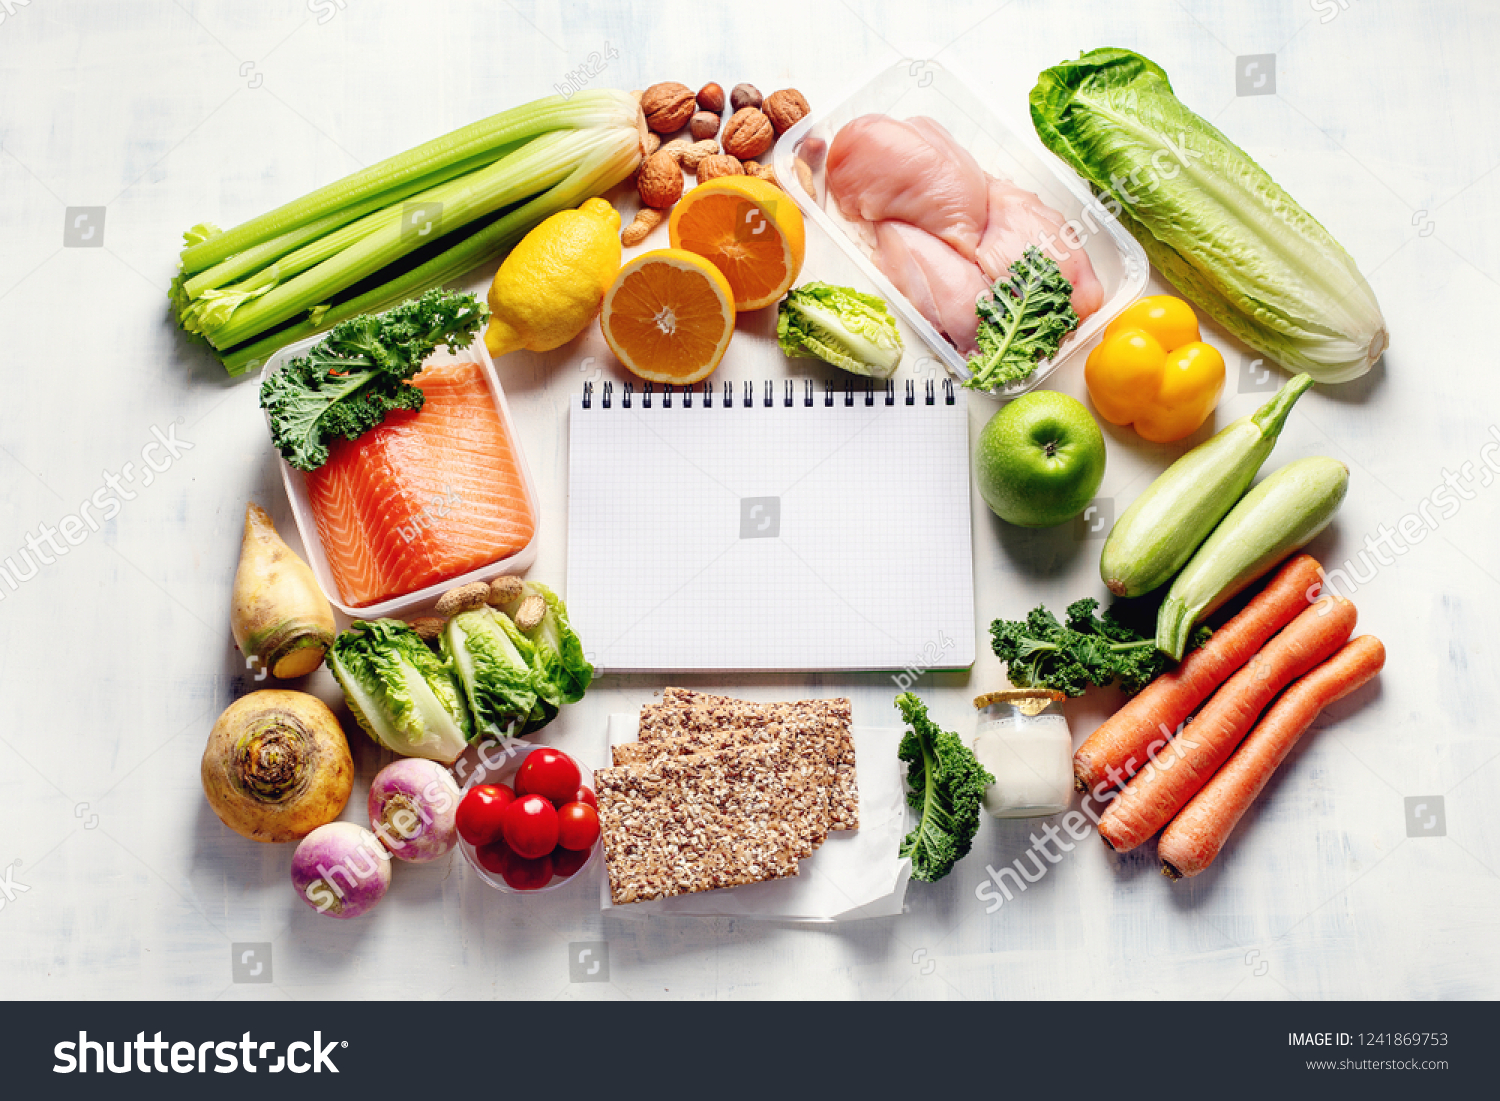 Healthy eating plan. Diet and meal planning. Top view. Flat lay #1241869753